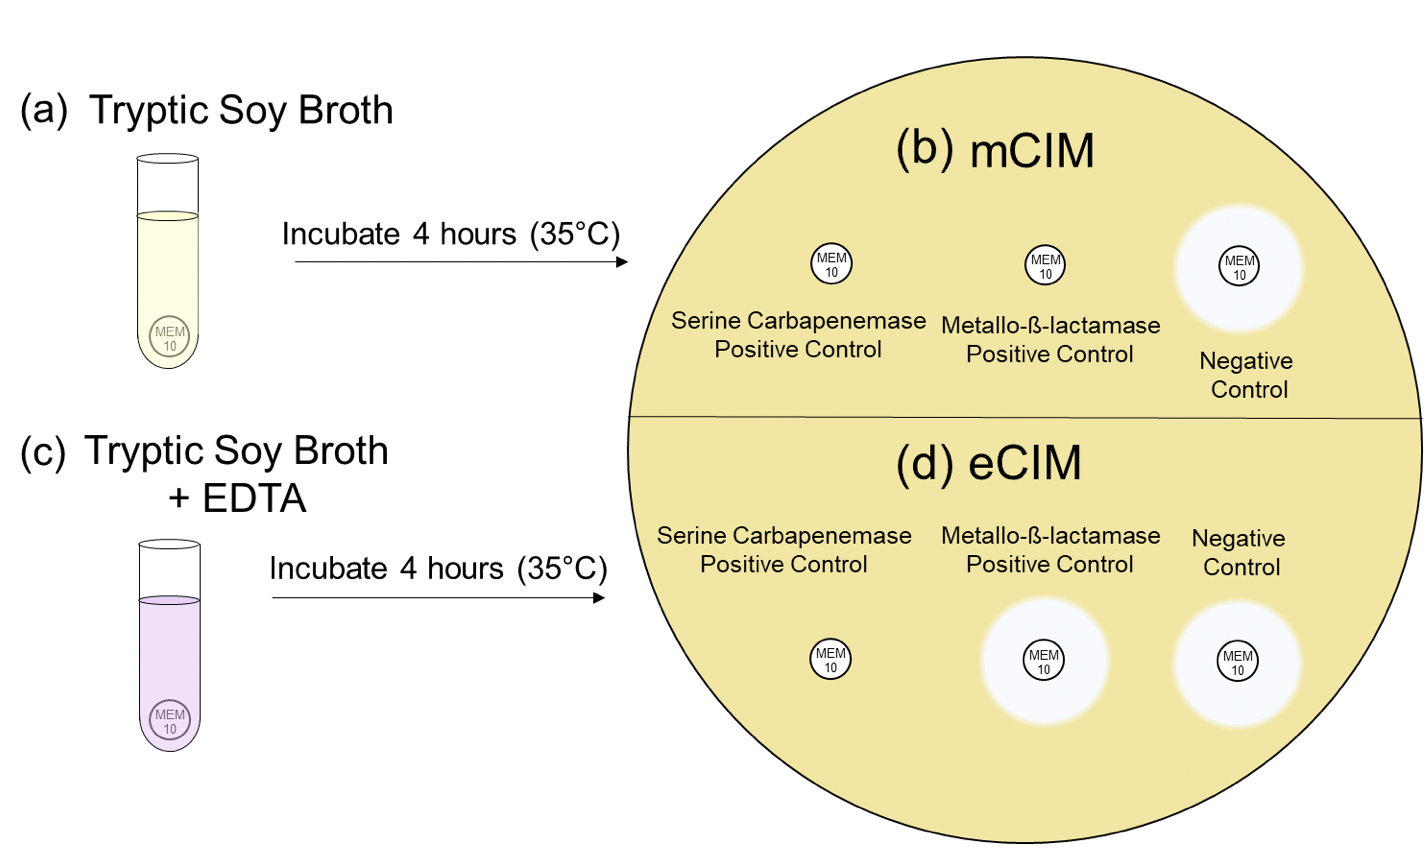 Figure 3. The mCIM and eCIM test.  In the mCIM assay, (a) Meropenem disks are incubated in tryptic soy broth with test organisms then (b) placed on a lawn of susceptible E. coli. Test organisms producing any type of carbapenemase destroy the meropenem and show no zone of inhibition. Those with no carbapenemase do not affect the meropenem and a zone of inhibition is evident.